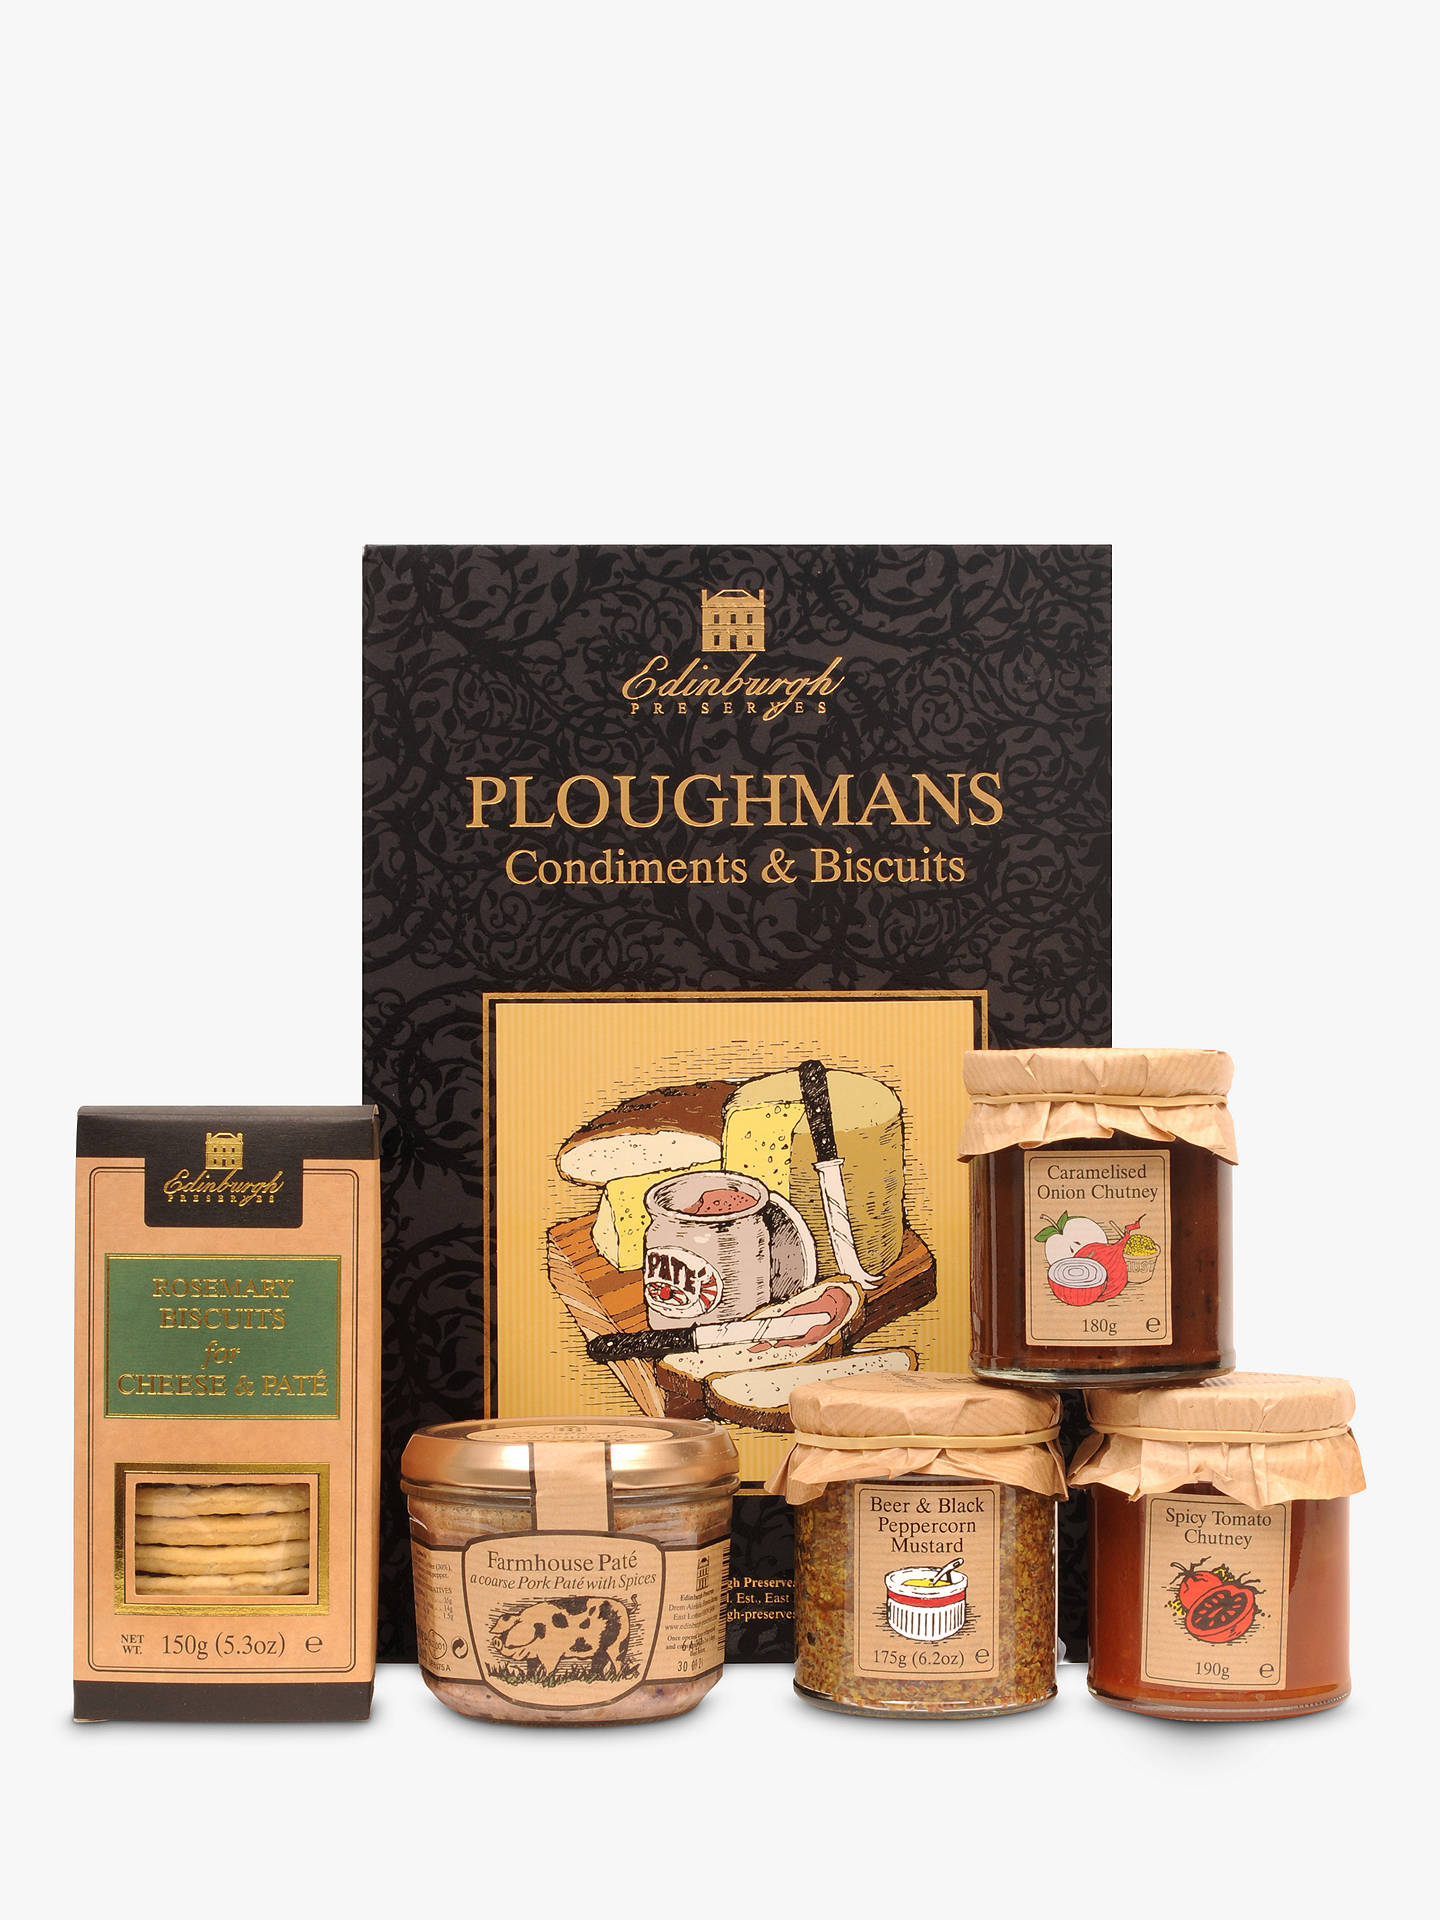 Edinburgh Preserves Ploughmans Box 885g